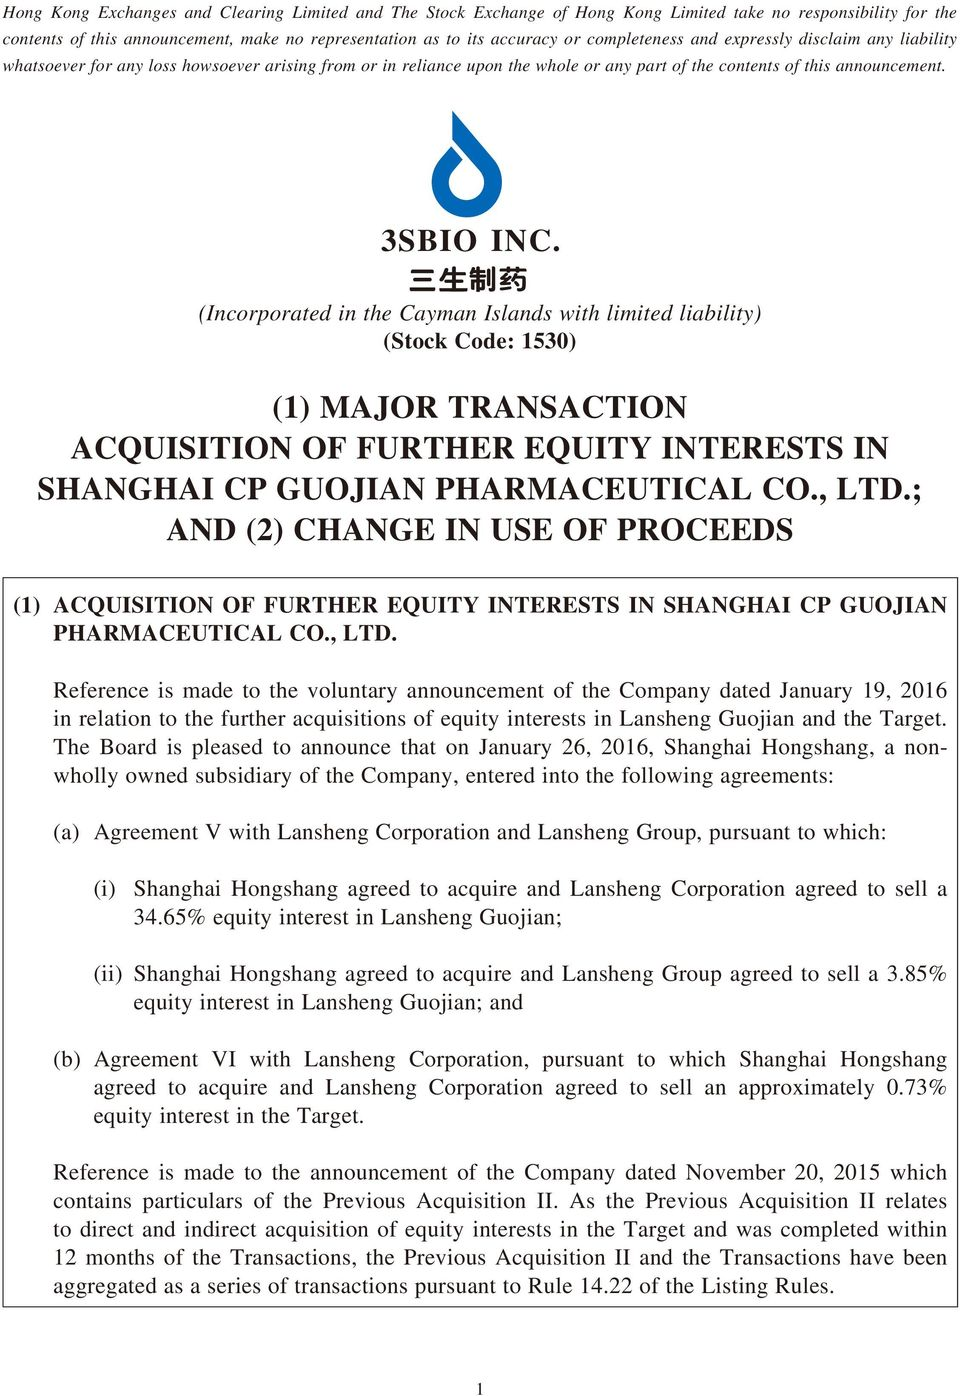 (Incorporated in the Cayman Islands with limited liability) (Stock Code: 1530) (1) MAJOR TRANSACTION ACQUISITION OF FURTHER EQUITY INTERESTS IN SHANGHAI CP GUOJIAN PHARMACEUTICAL CO., LTD.